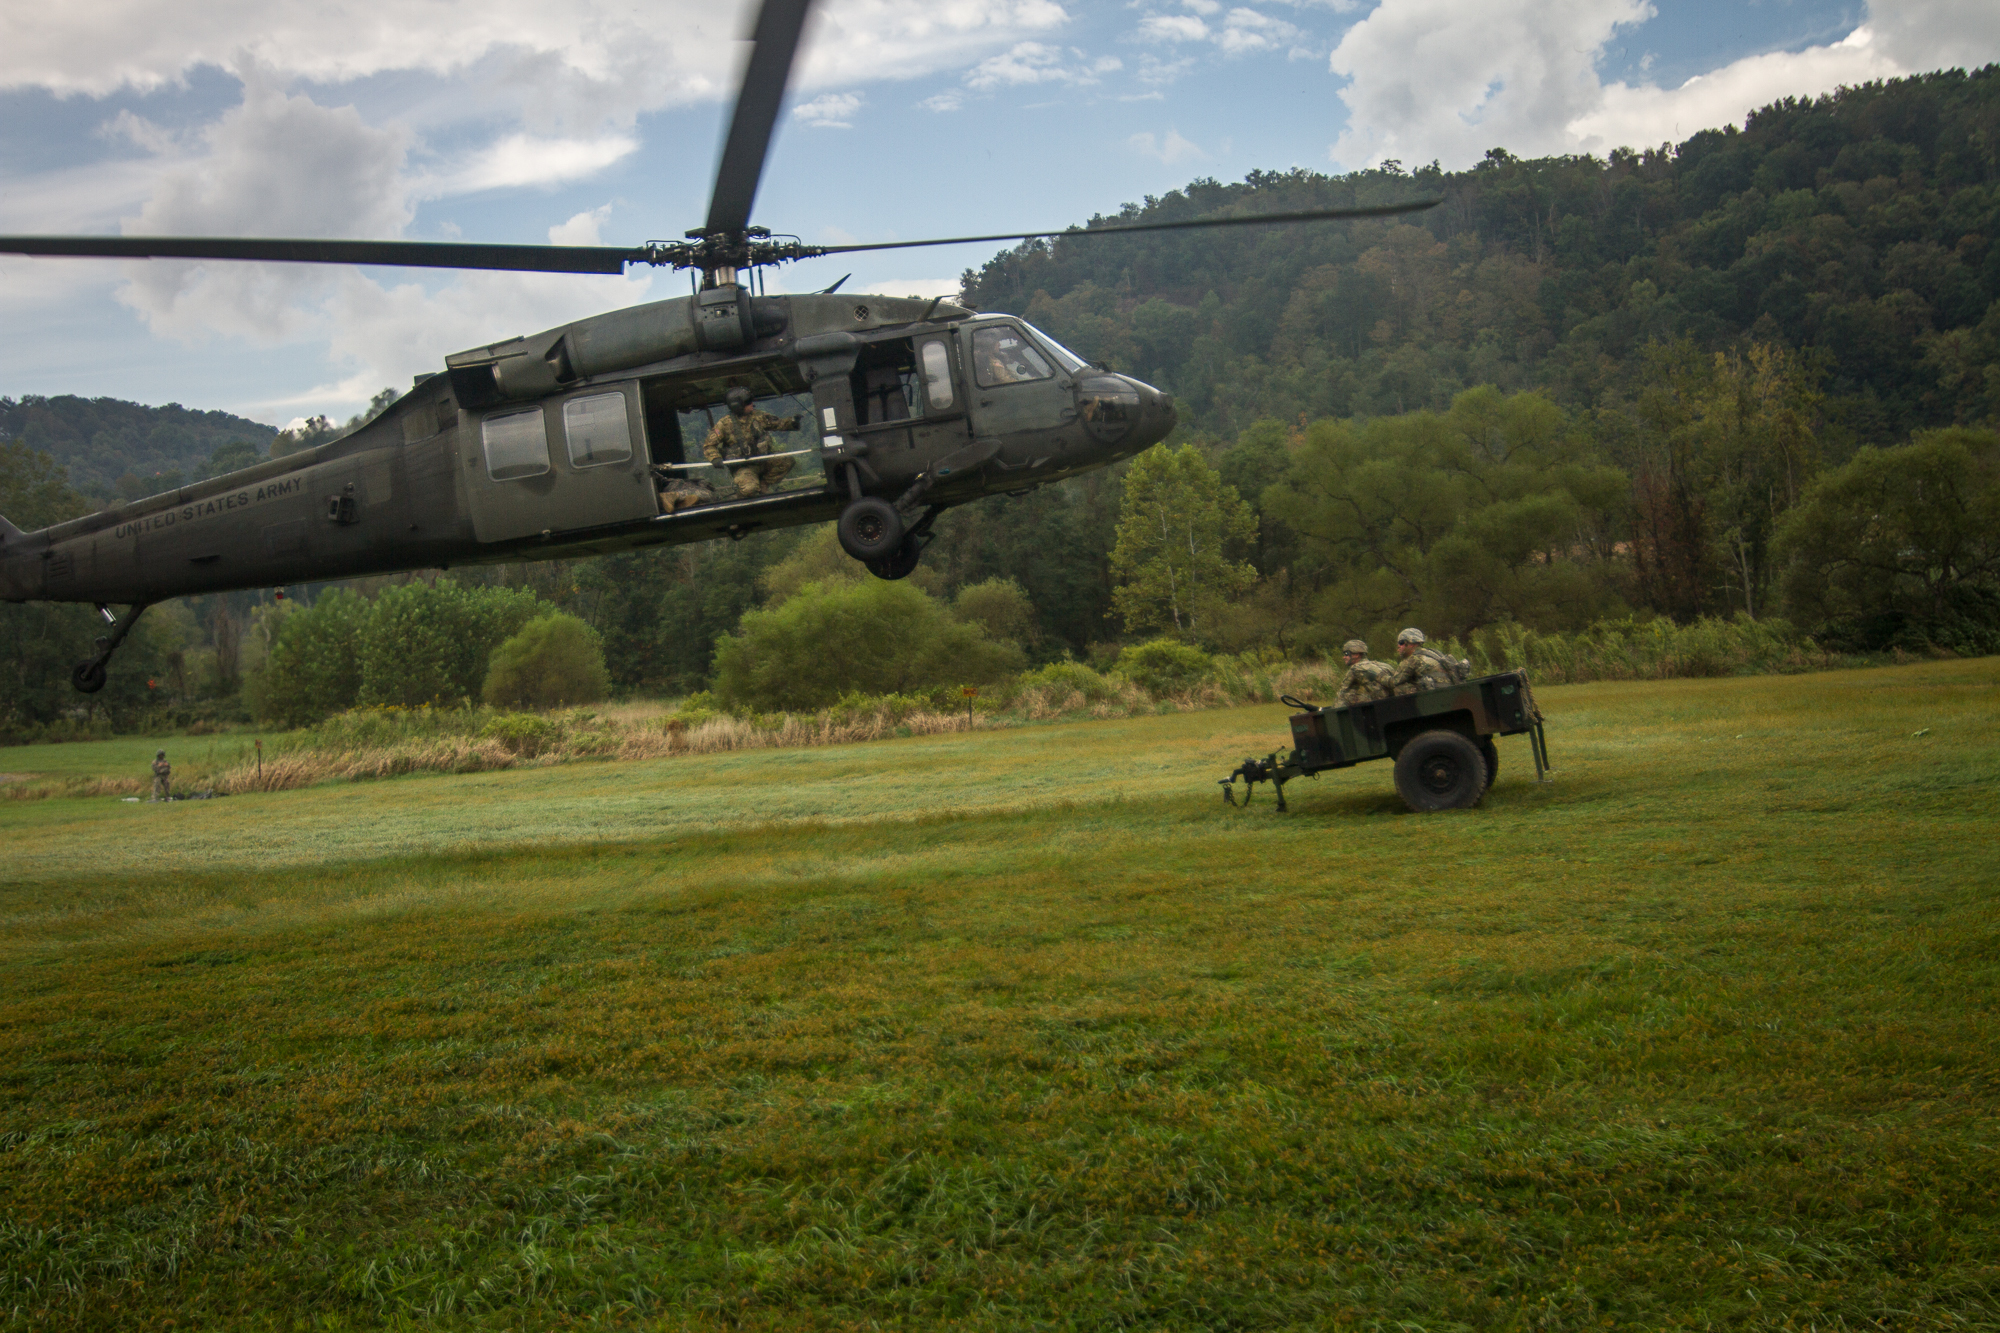 Sling Load, Air, Black, Hawk, Helicopter, HQ Photo